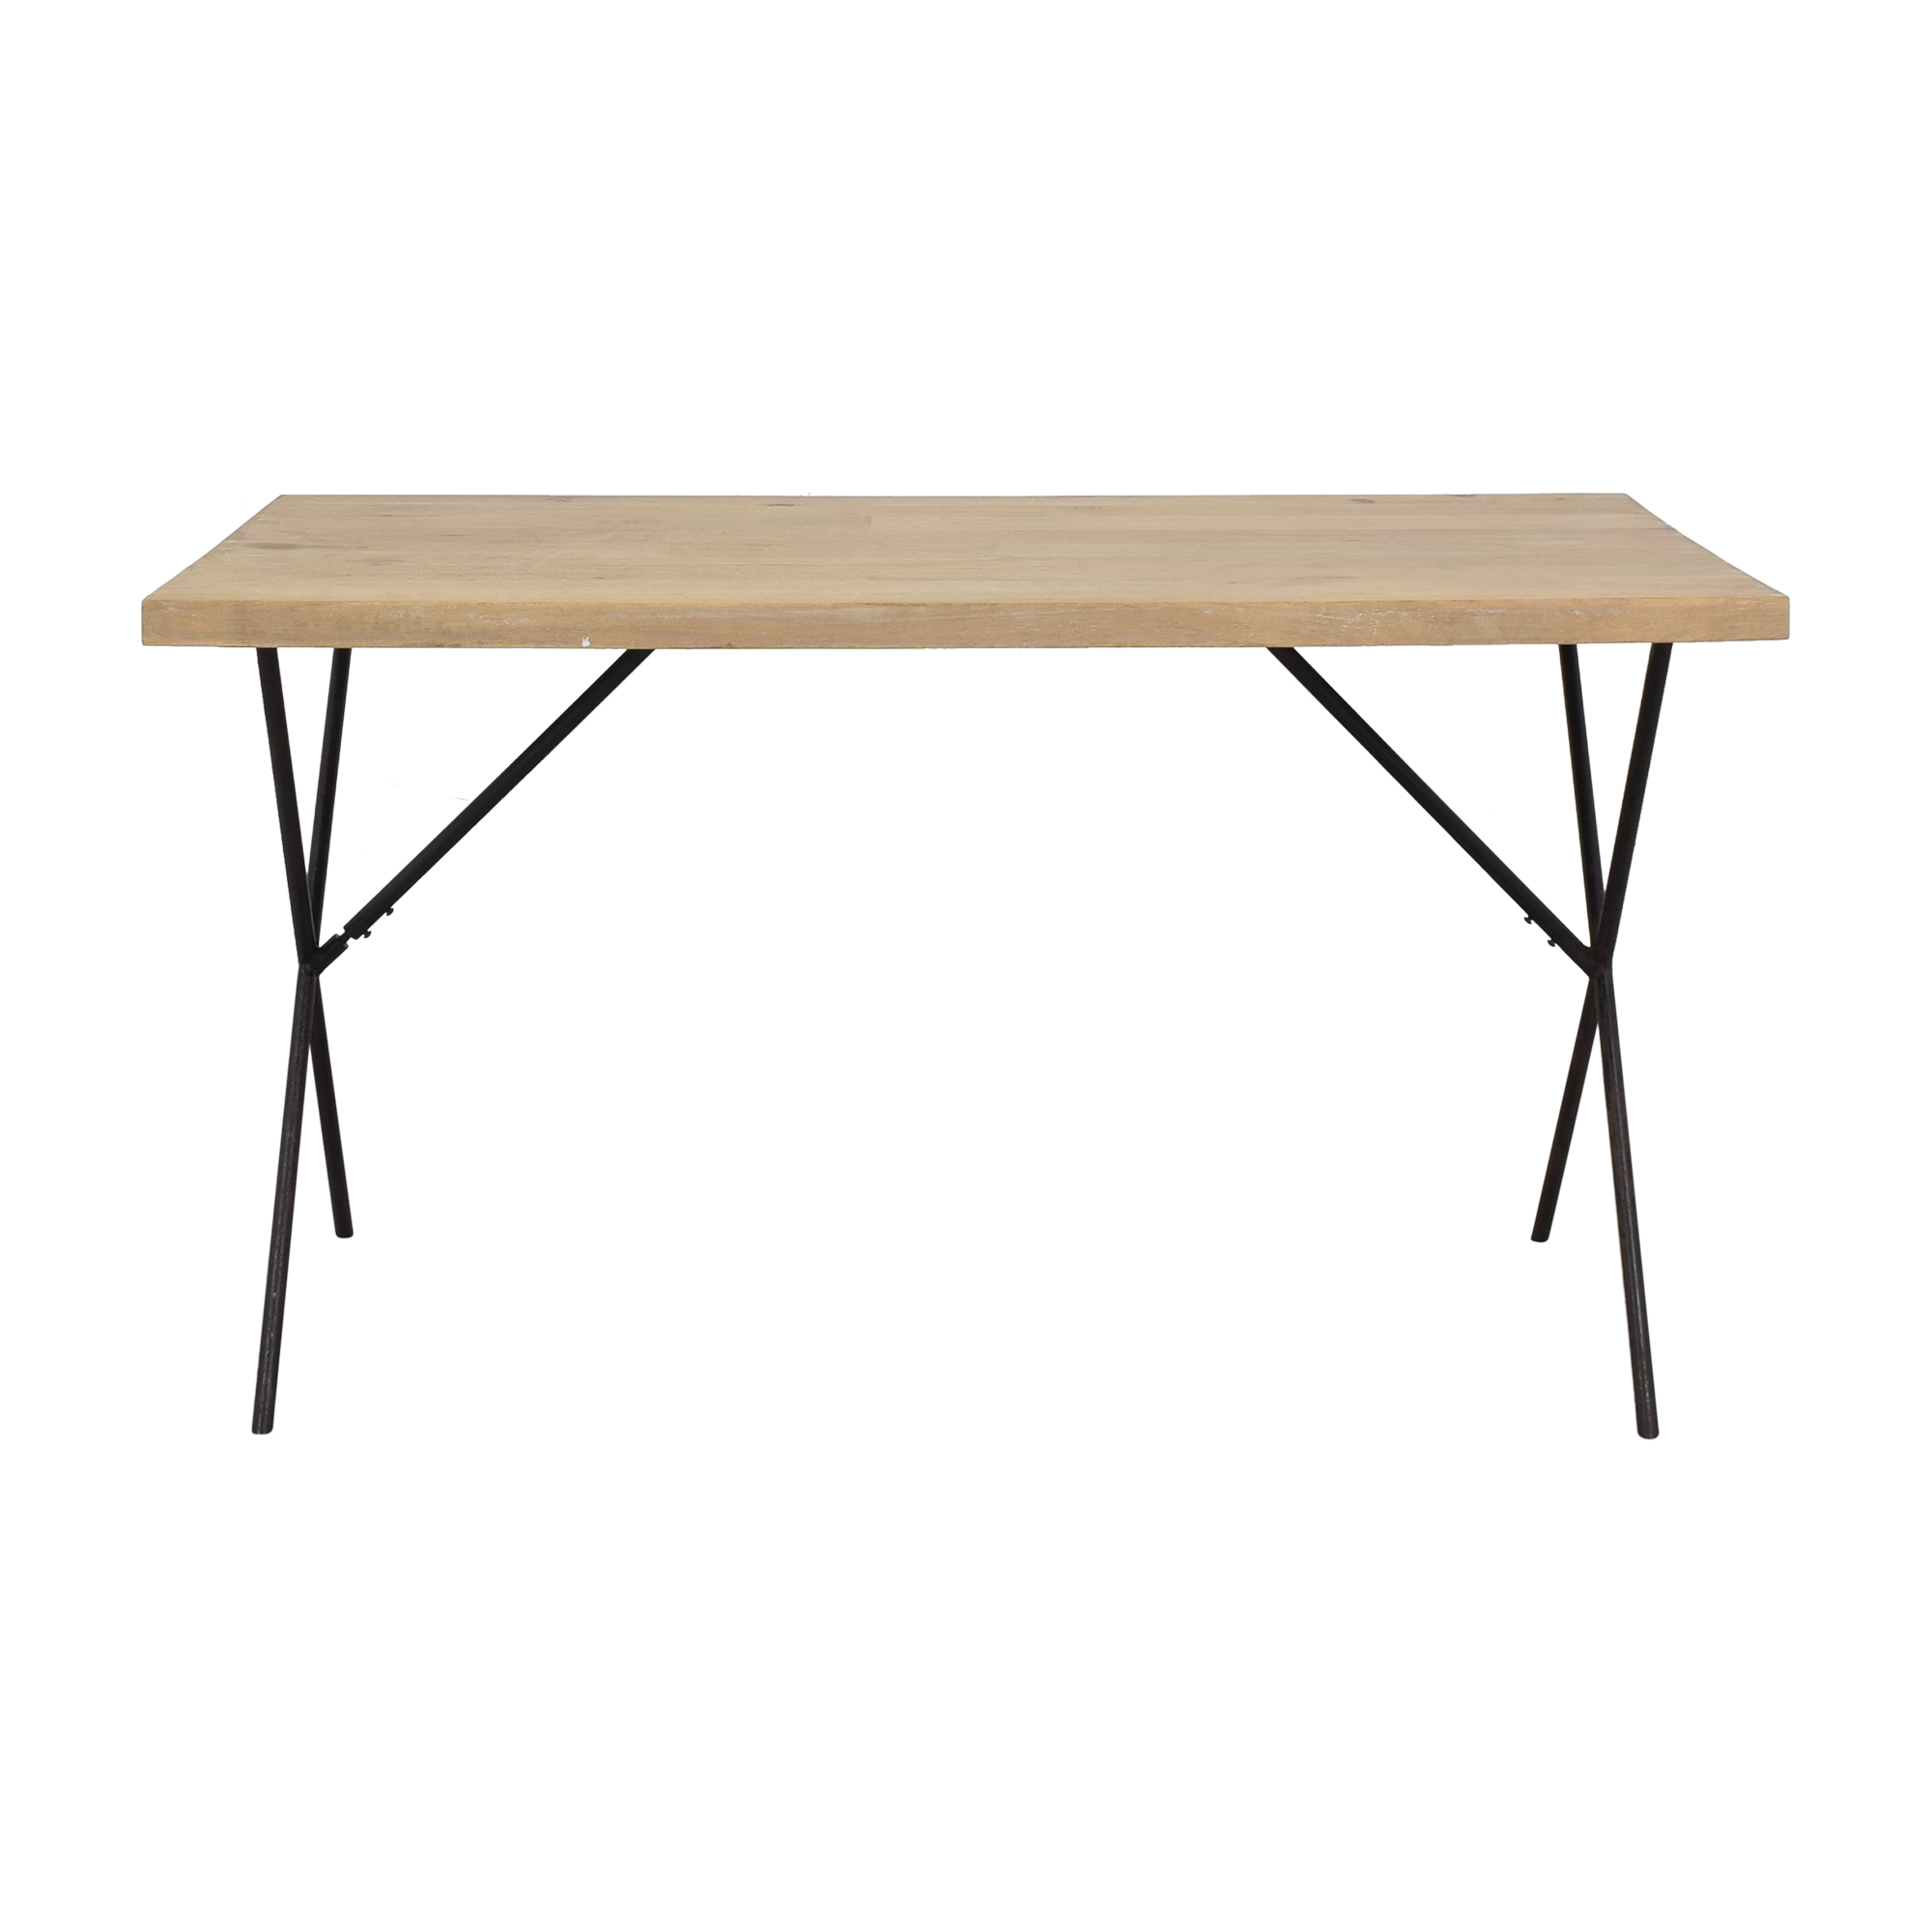 West Elm West Elm Metal Truss Work Table second hand